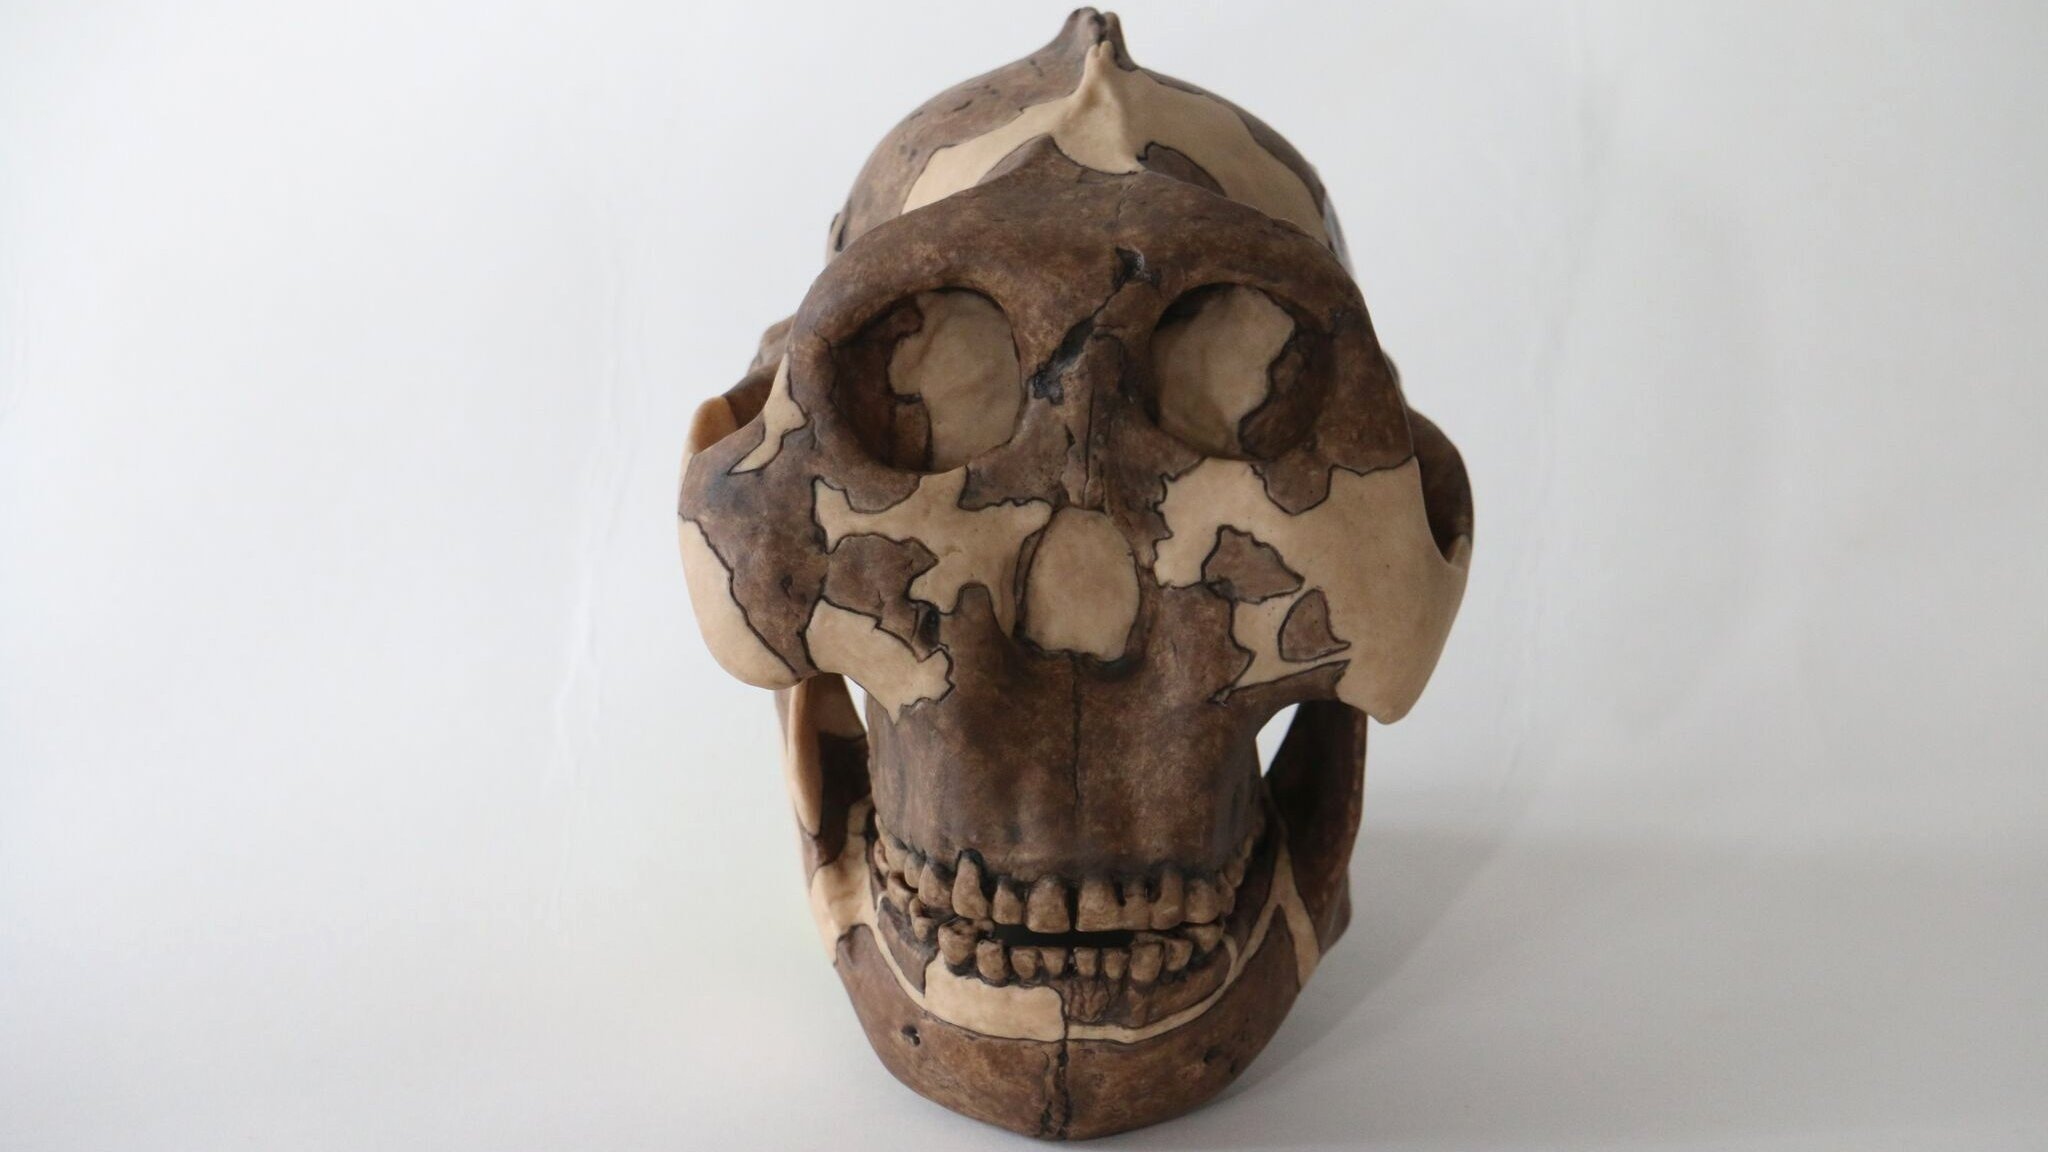 Standing about 4 feet tall, early human ancestor Paranthropus boisei had a small brain and a wide, dish-like face. It is most well-known for having big teeth and hefty chewing muscles. (Source: Cambridge University)